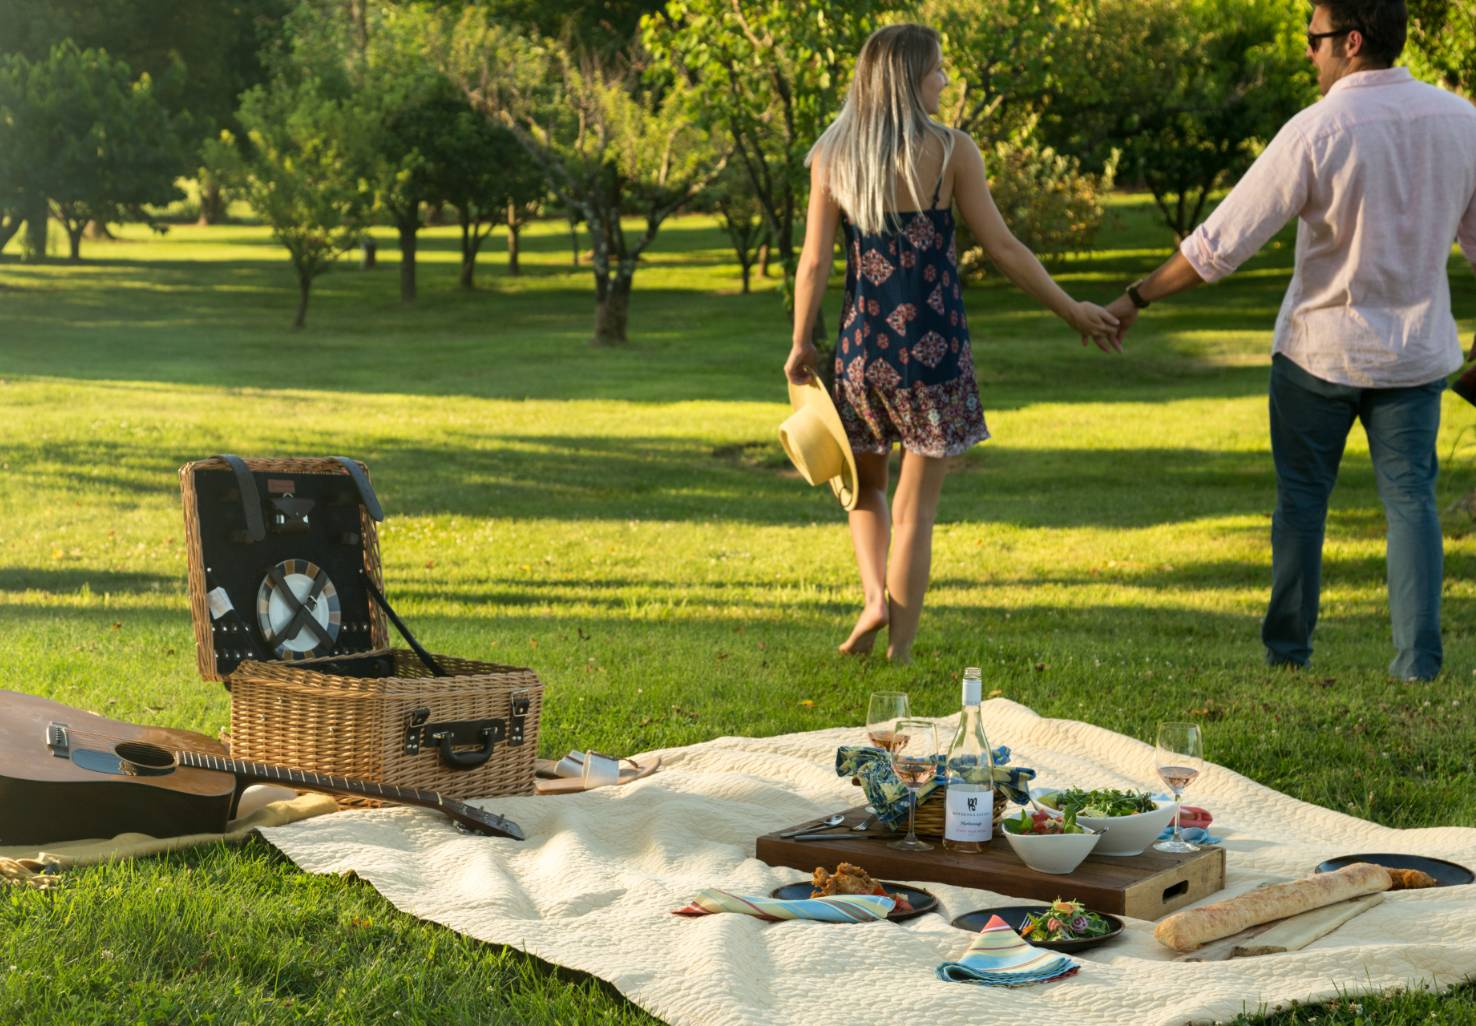 Gourmet picnic with guitar and couple in the background